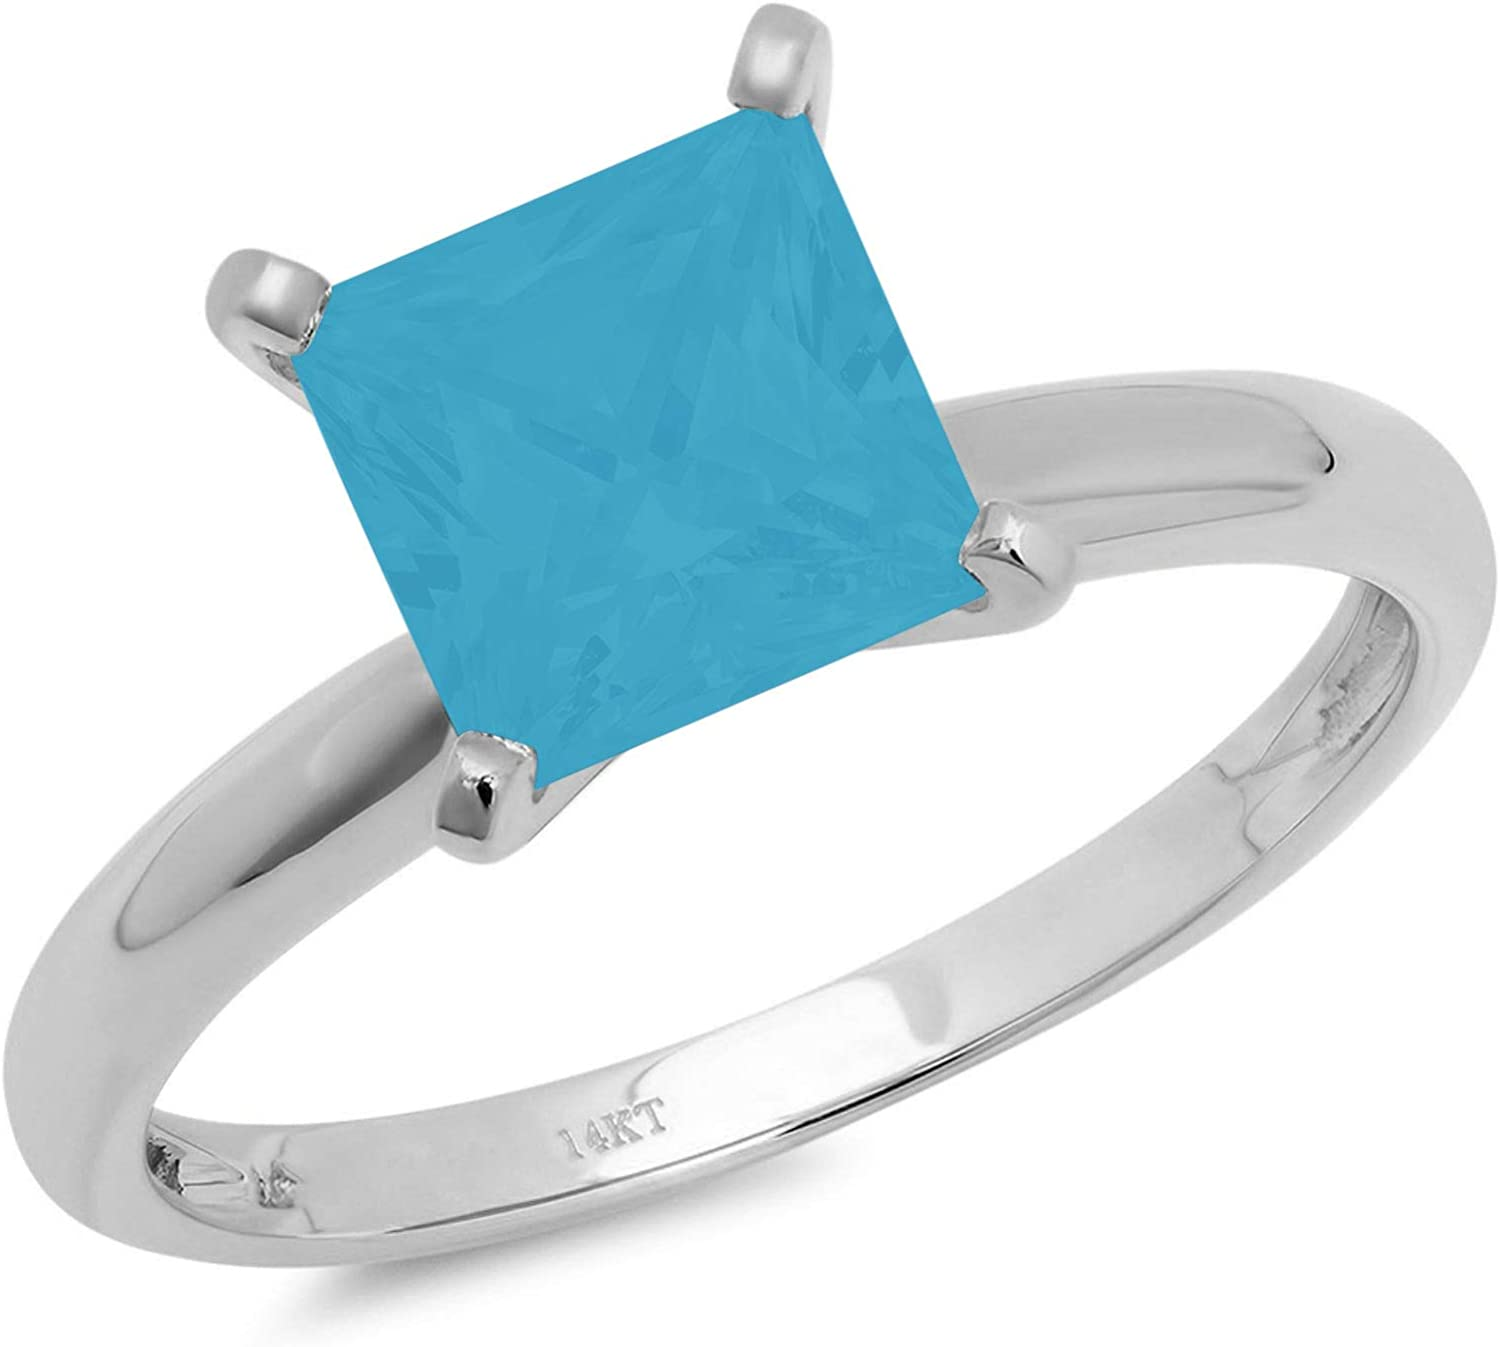 2.9ct Brilliant Princess Cut Solitaire Flawless Simulated Cubic Zirconia Blue Turquoise Ideal 4-Prong Engagement Wedding Bridal Promise Anniversary Designer Ring Solid 14k White Gold for Women